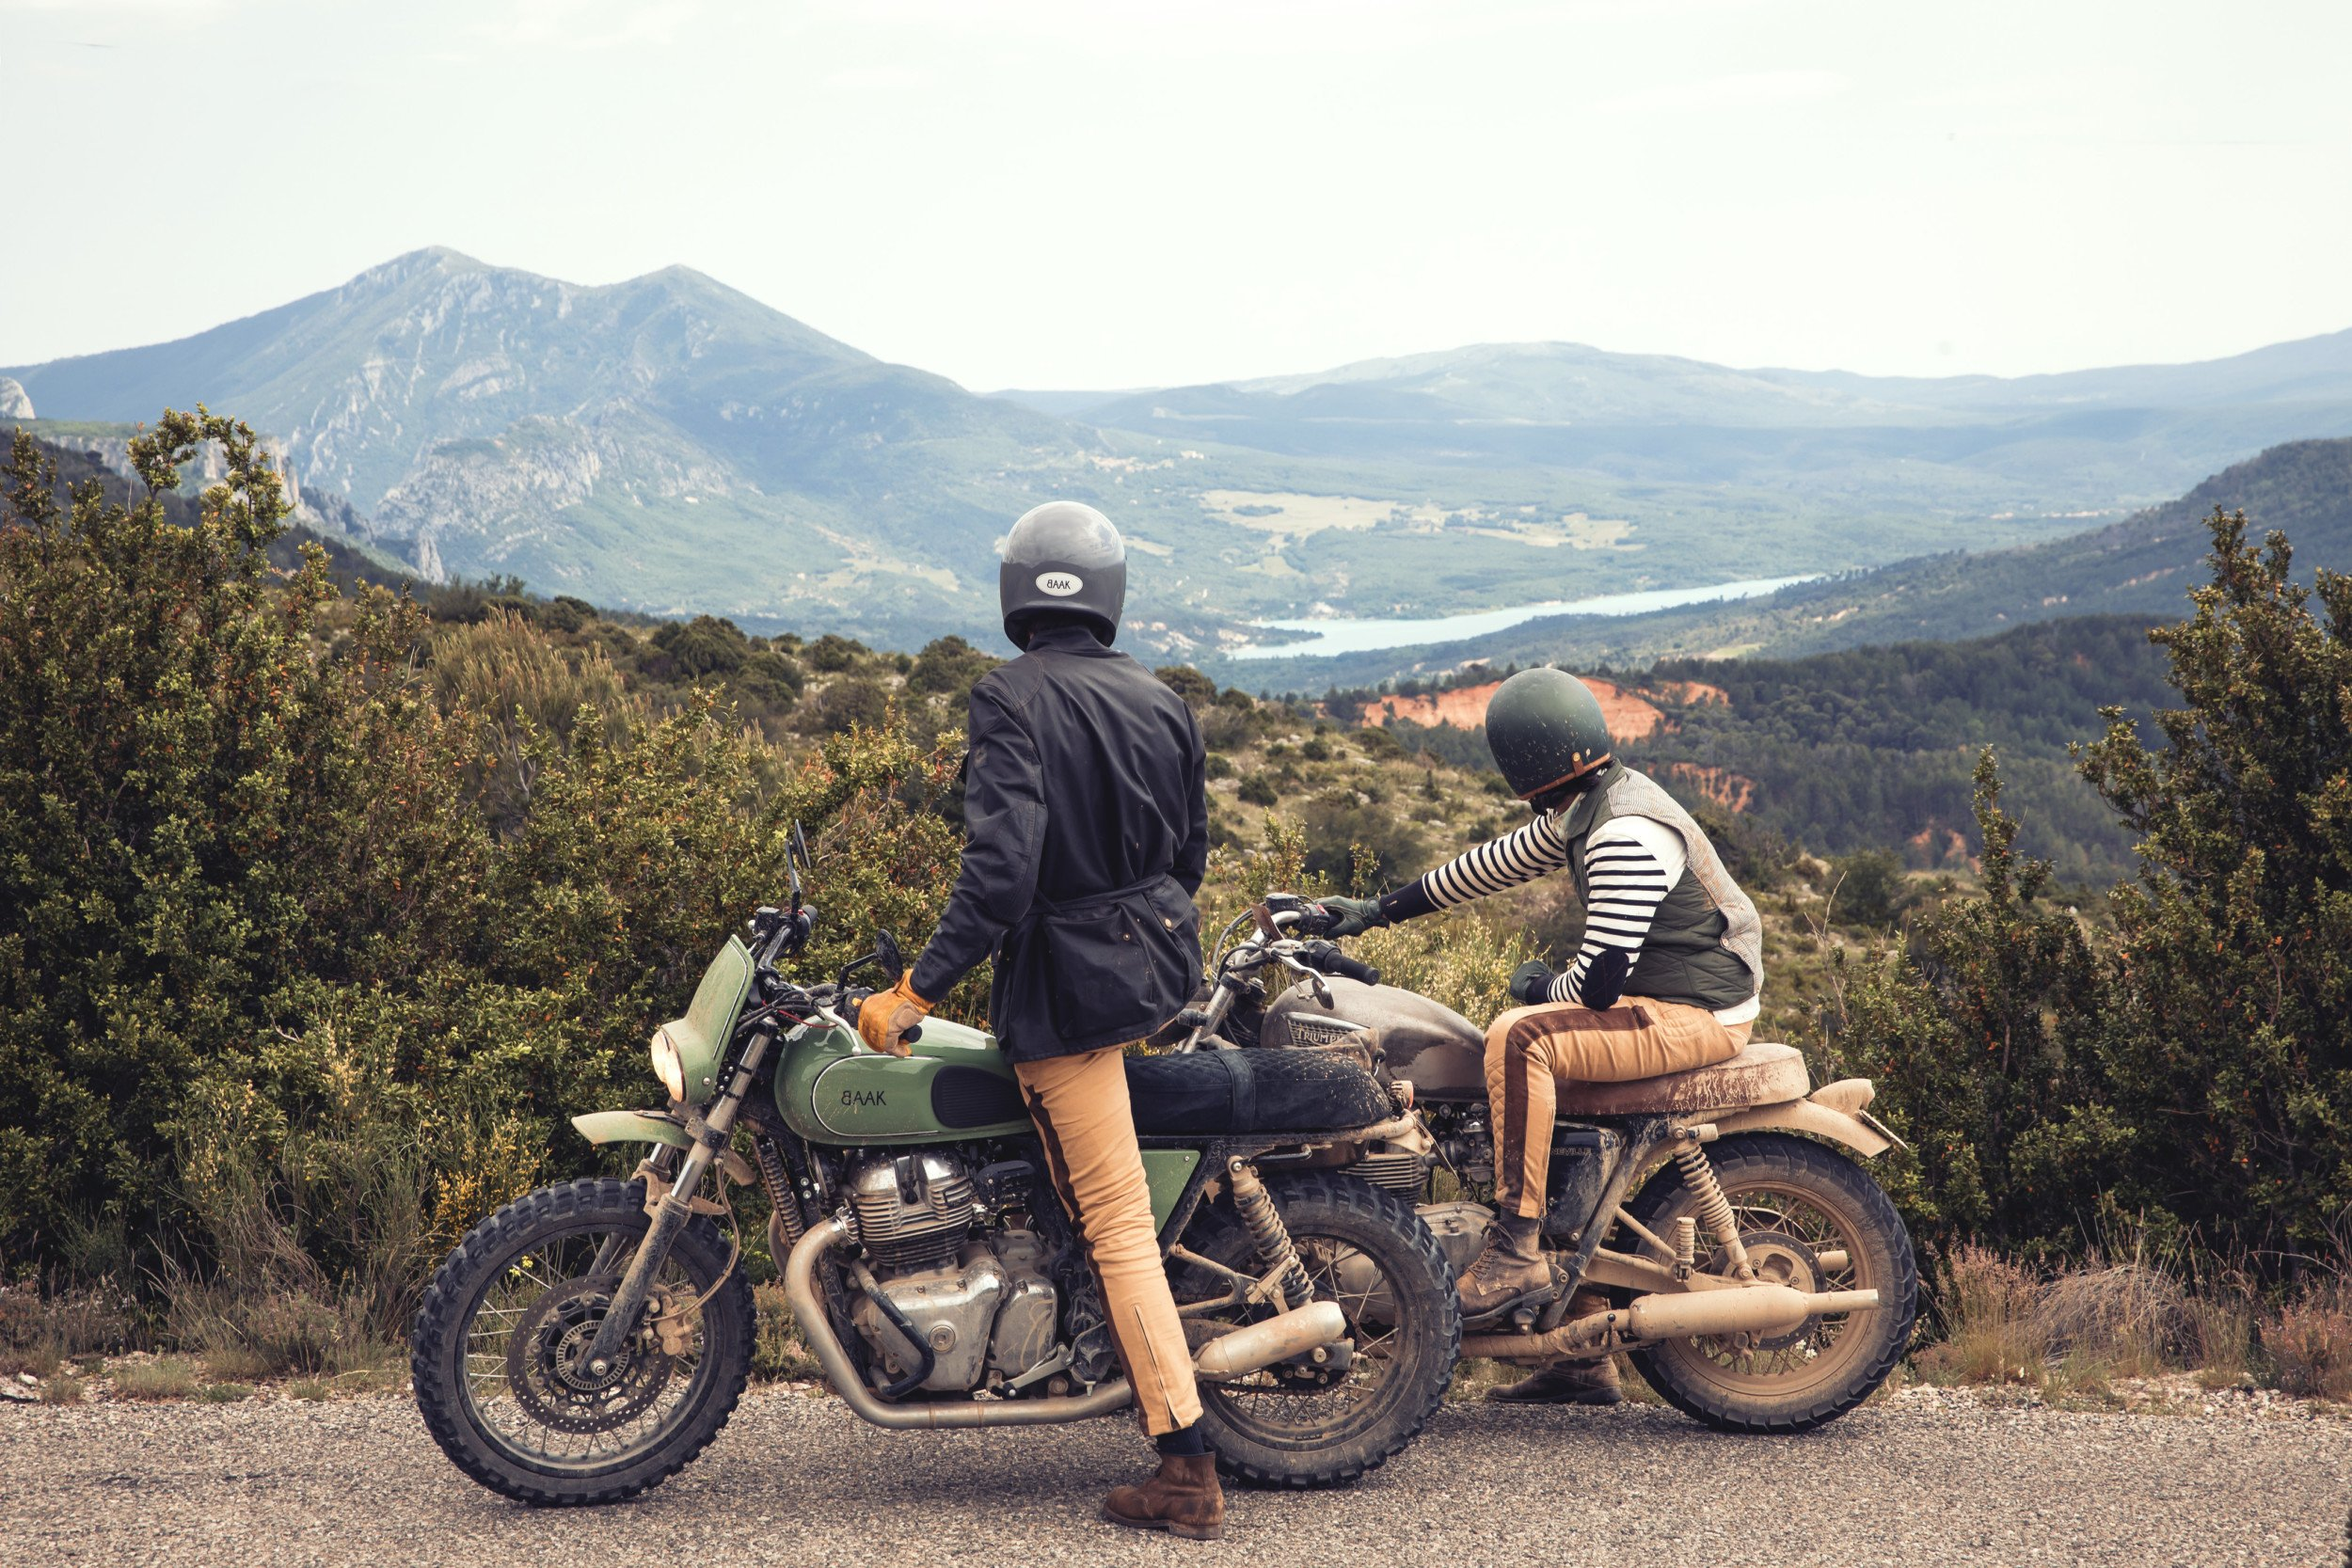 Motorcycle road trip Baak Aventures - From Provence to Vallo Alpino